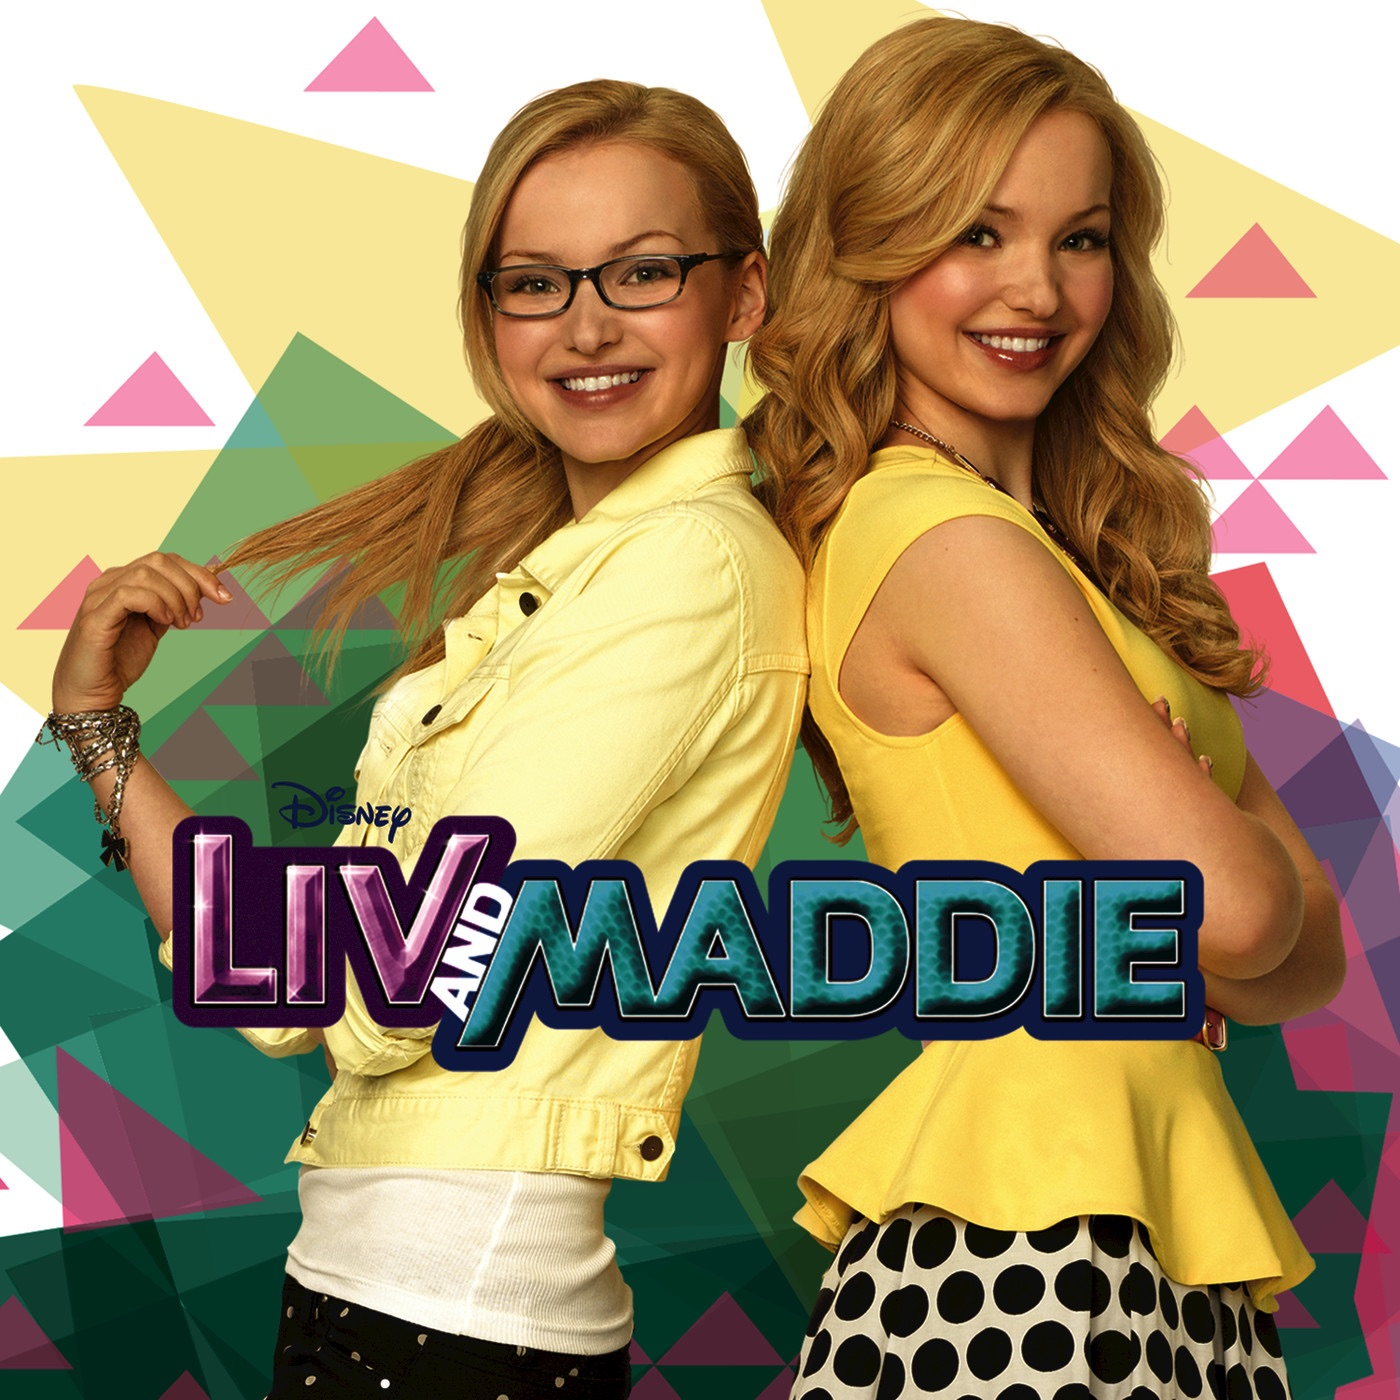 Dove cameron liv and maddie theme song - photo#30